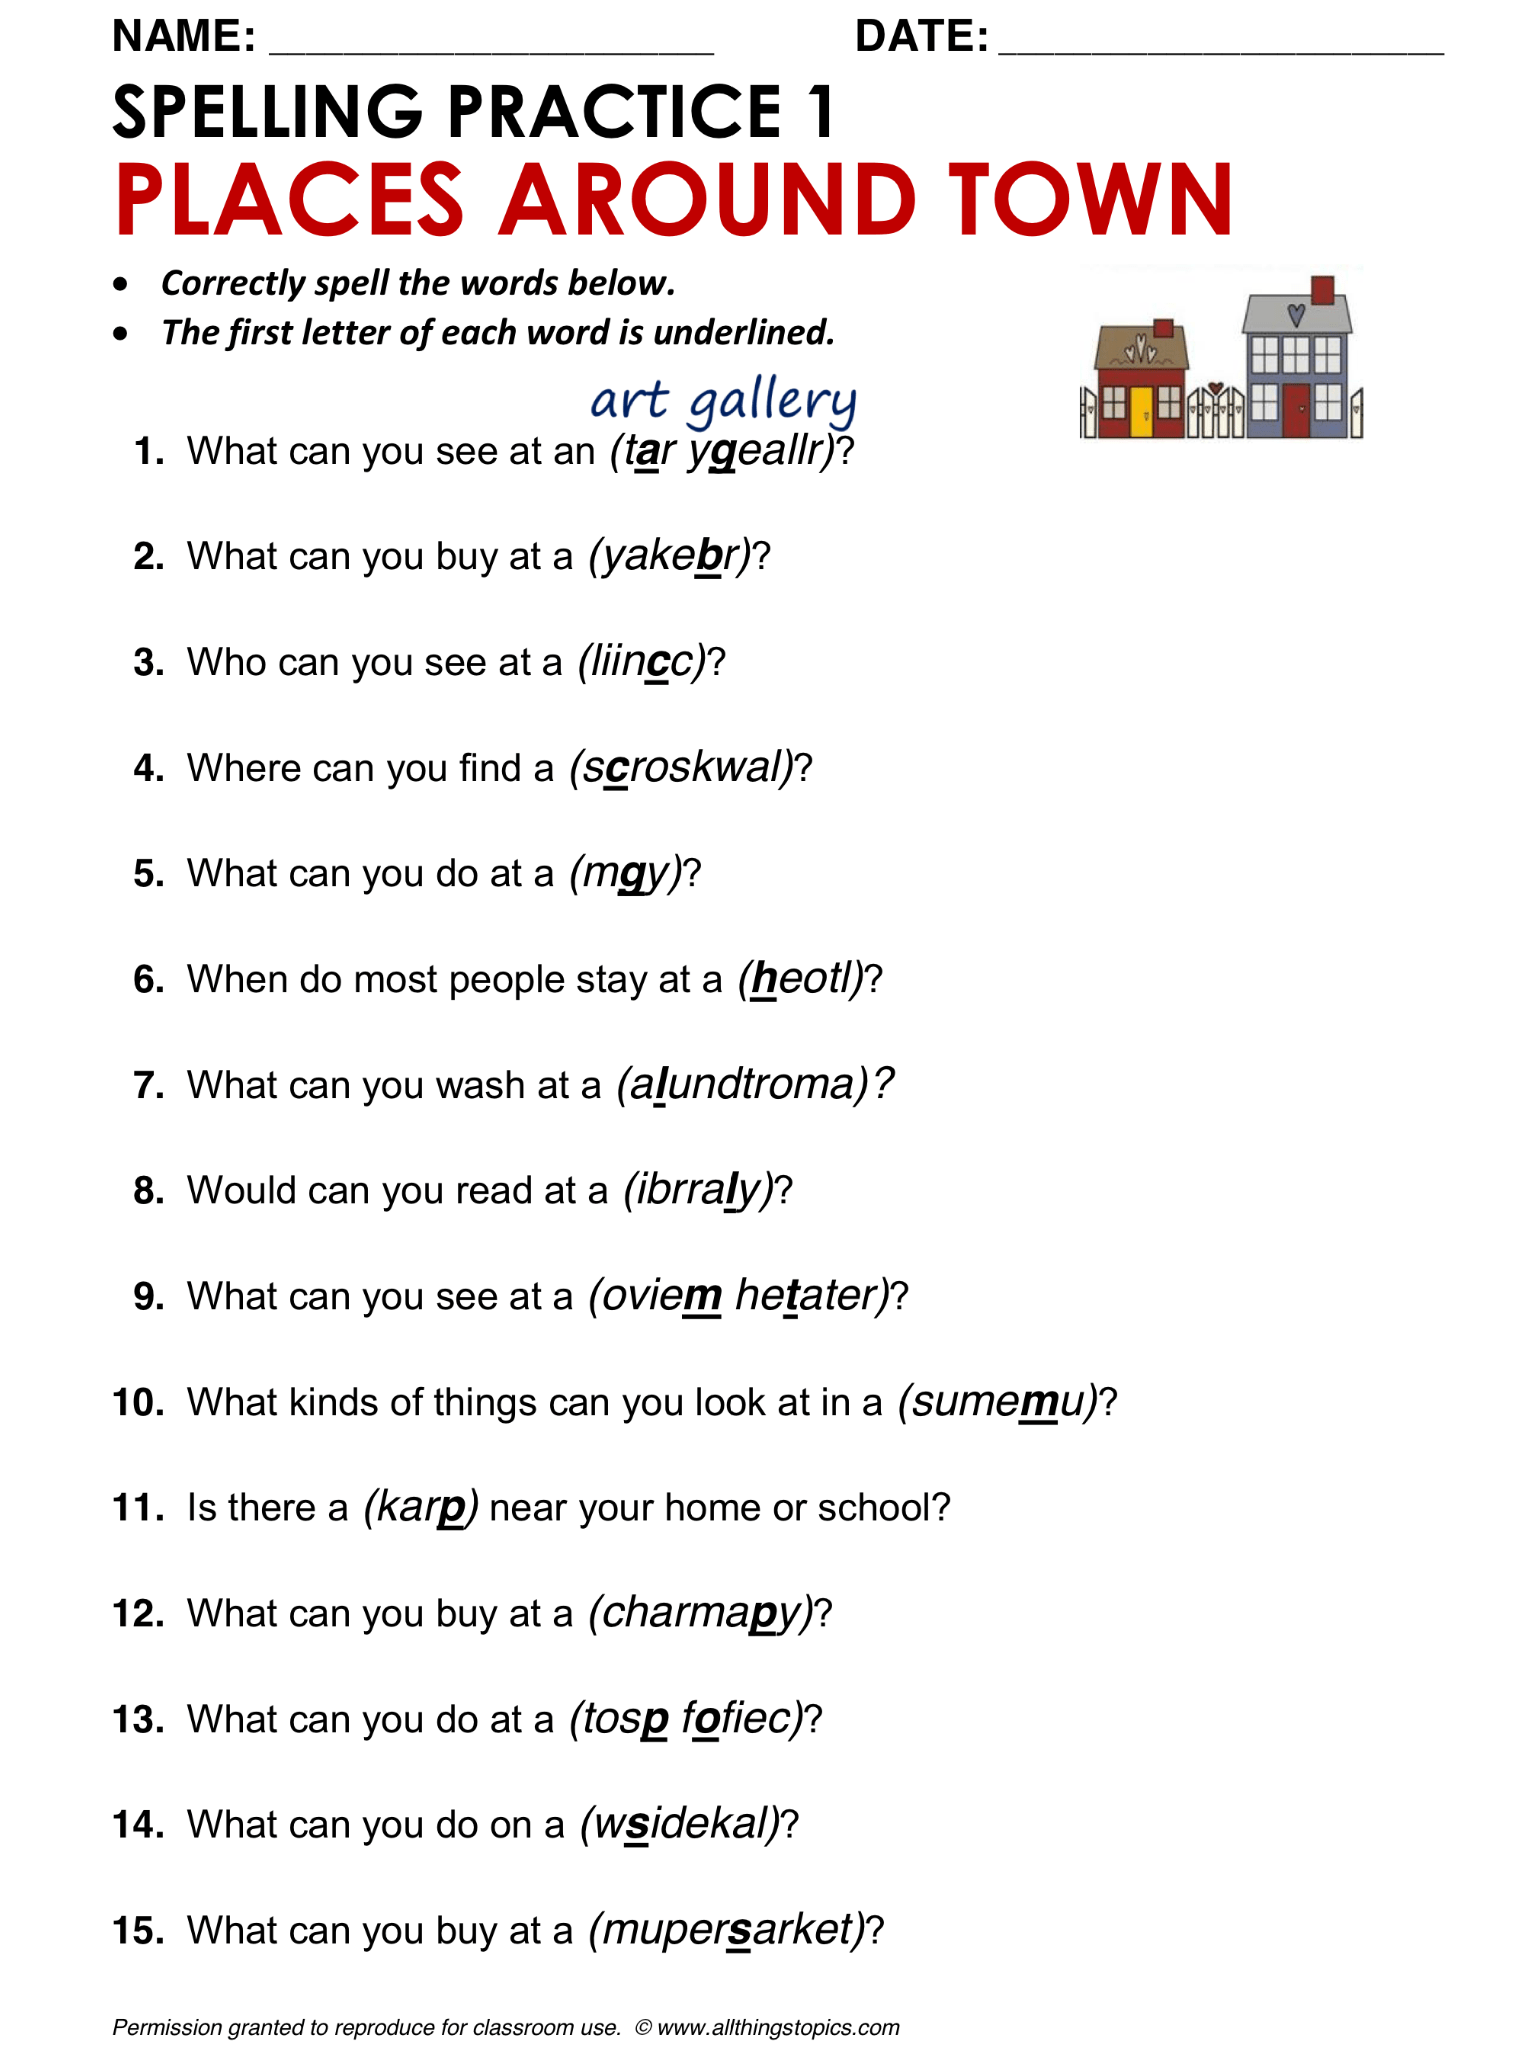 Spelling Worksheet Speaking And Vocab Practice Places Around Town English Learning English